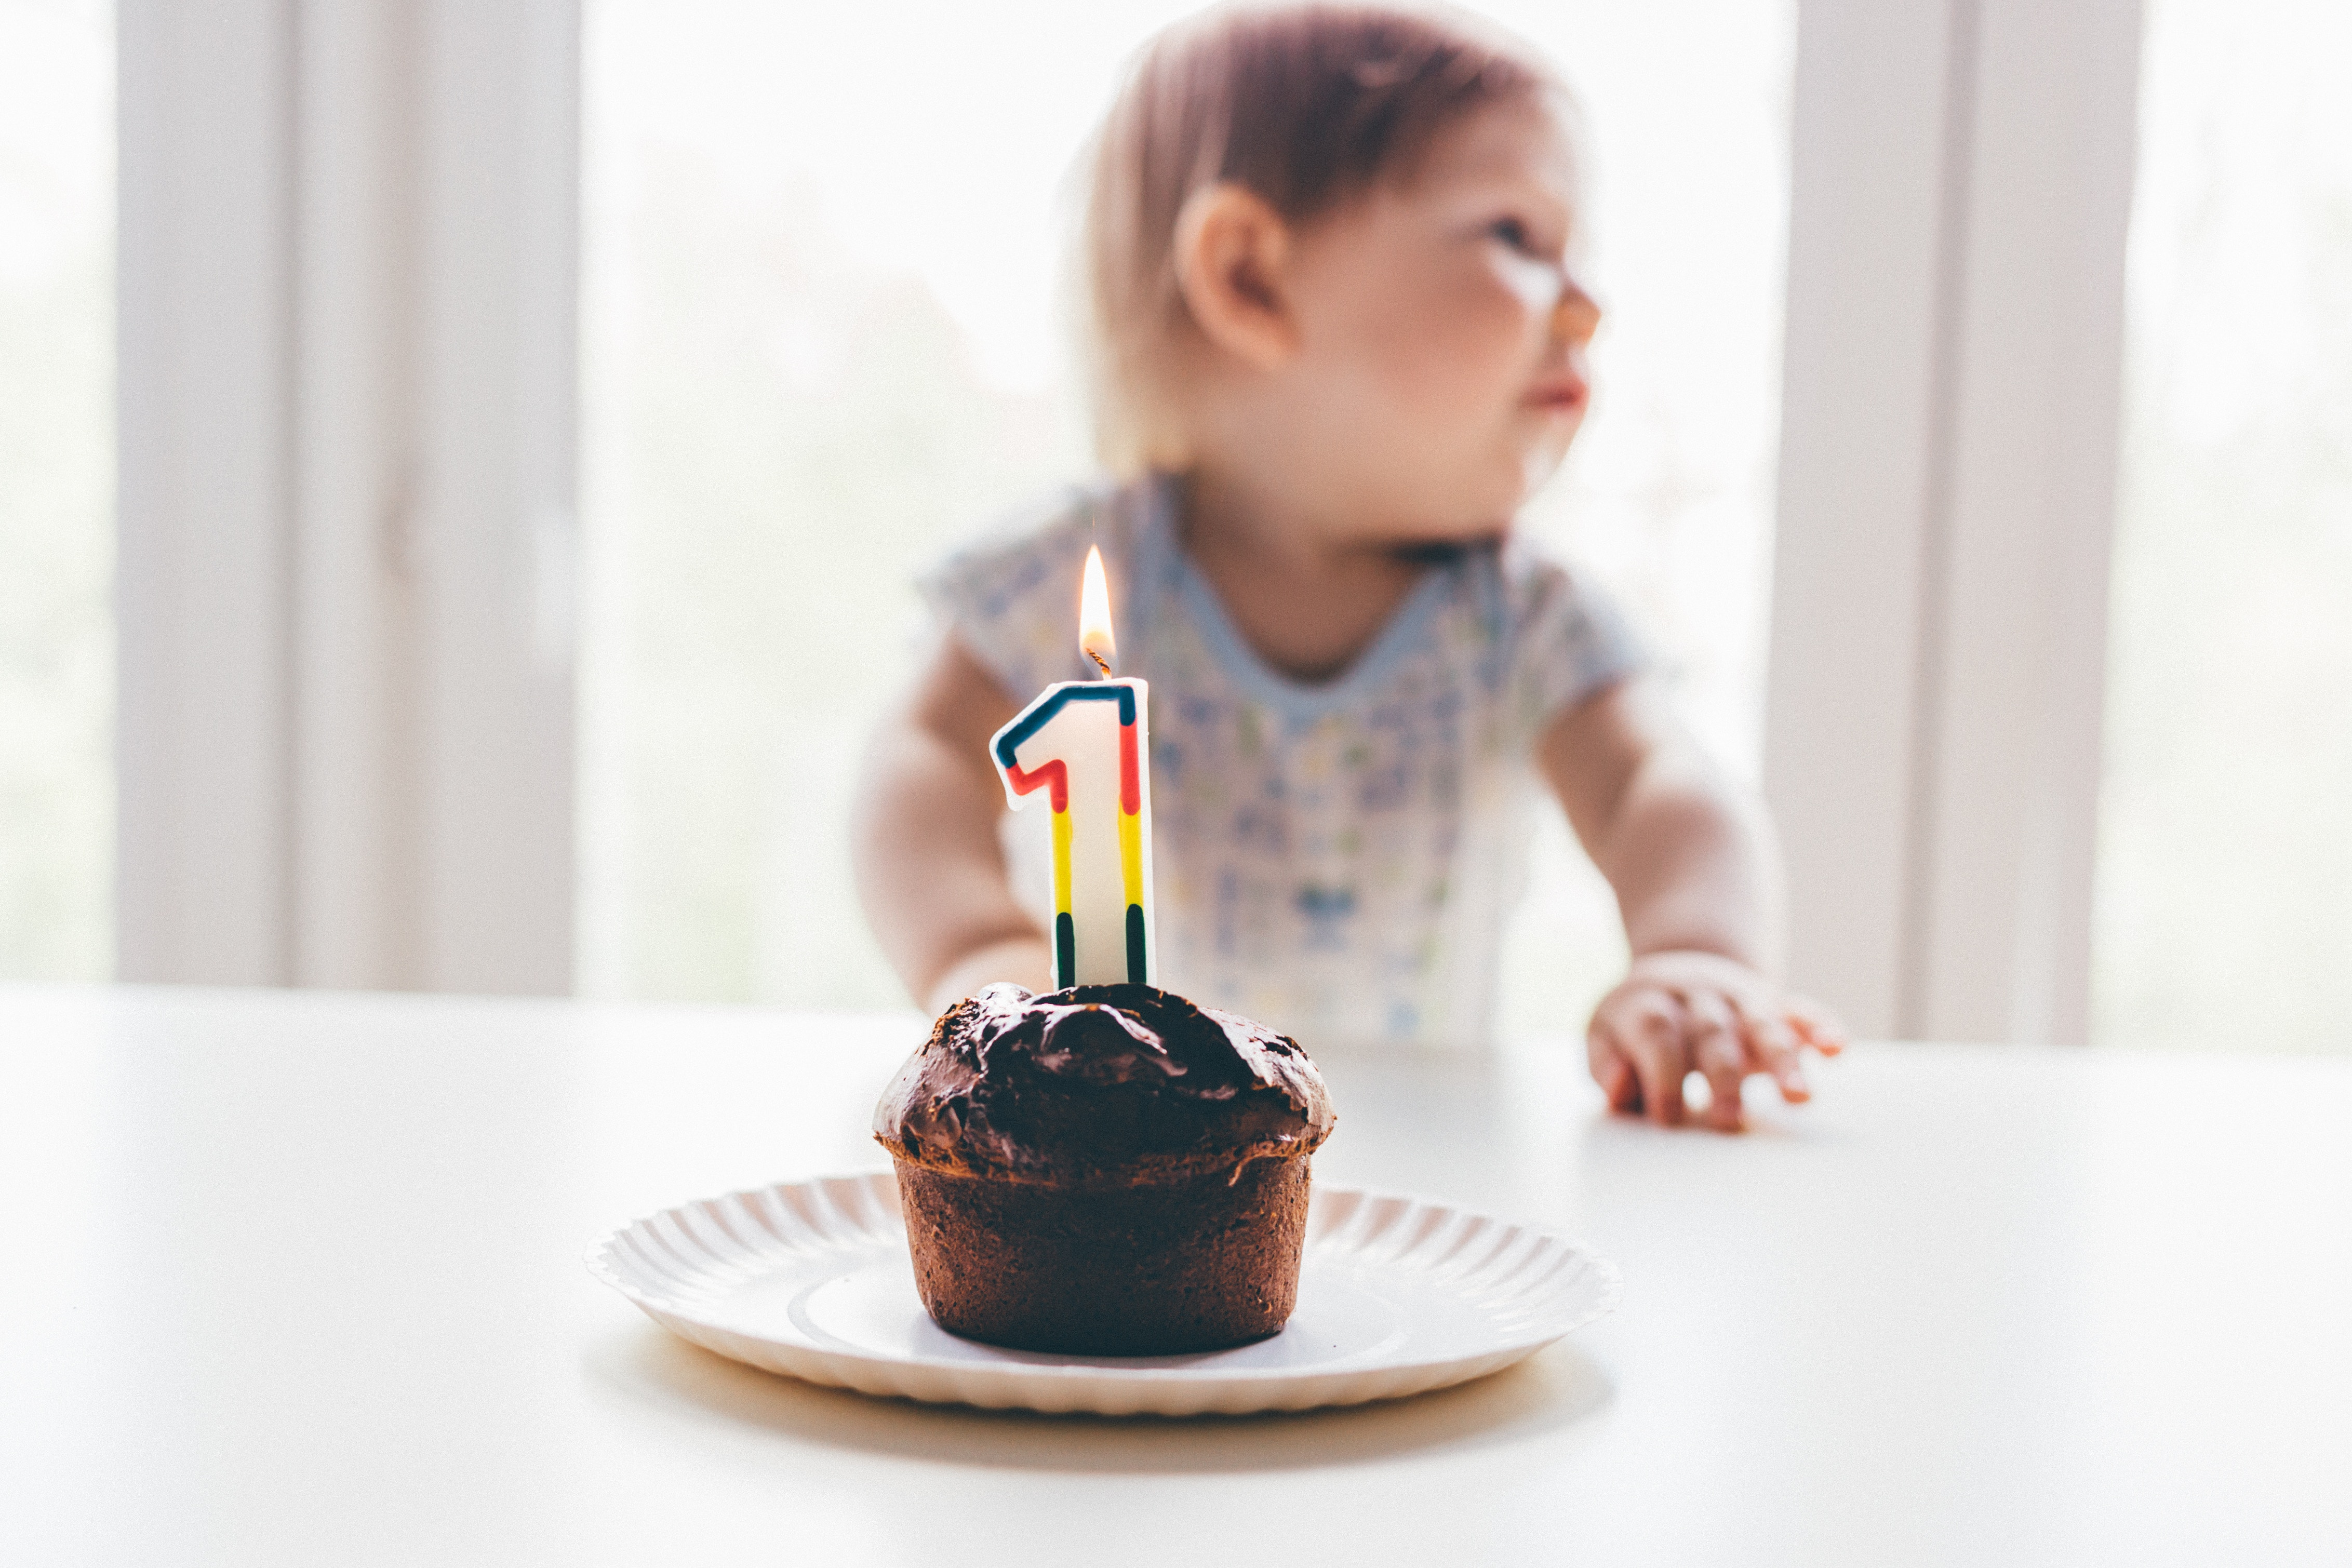 6 Ways To Make Baby S 1st Birthday Special My 1st Years Blog